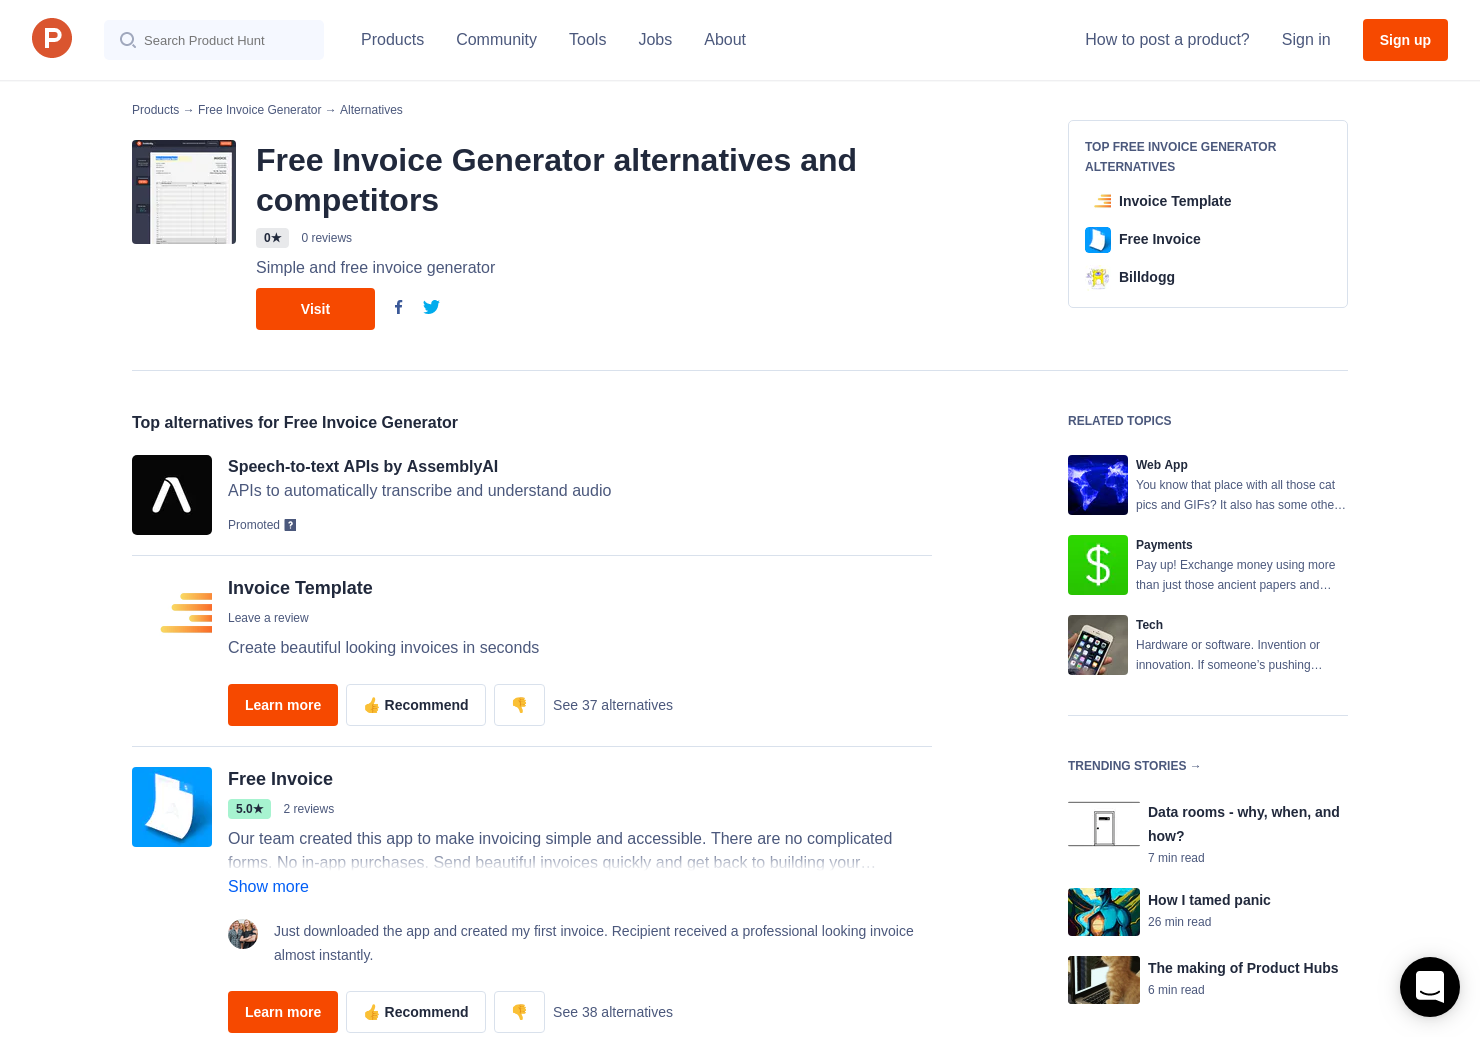 14 alternatives to free invoice generator product hunt